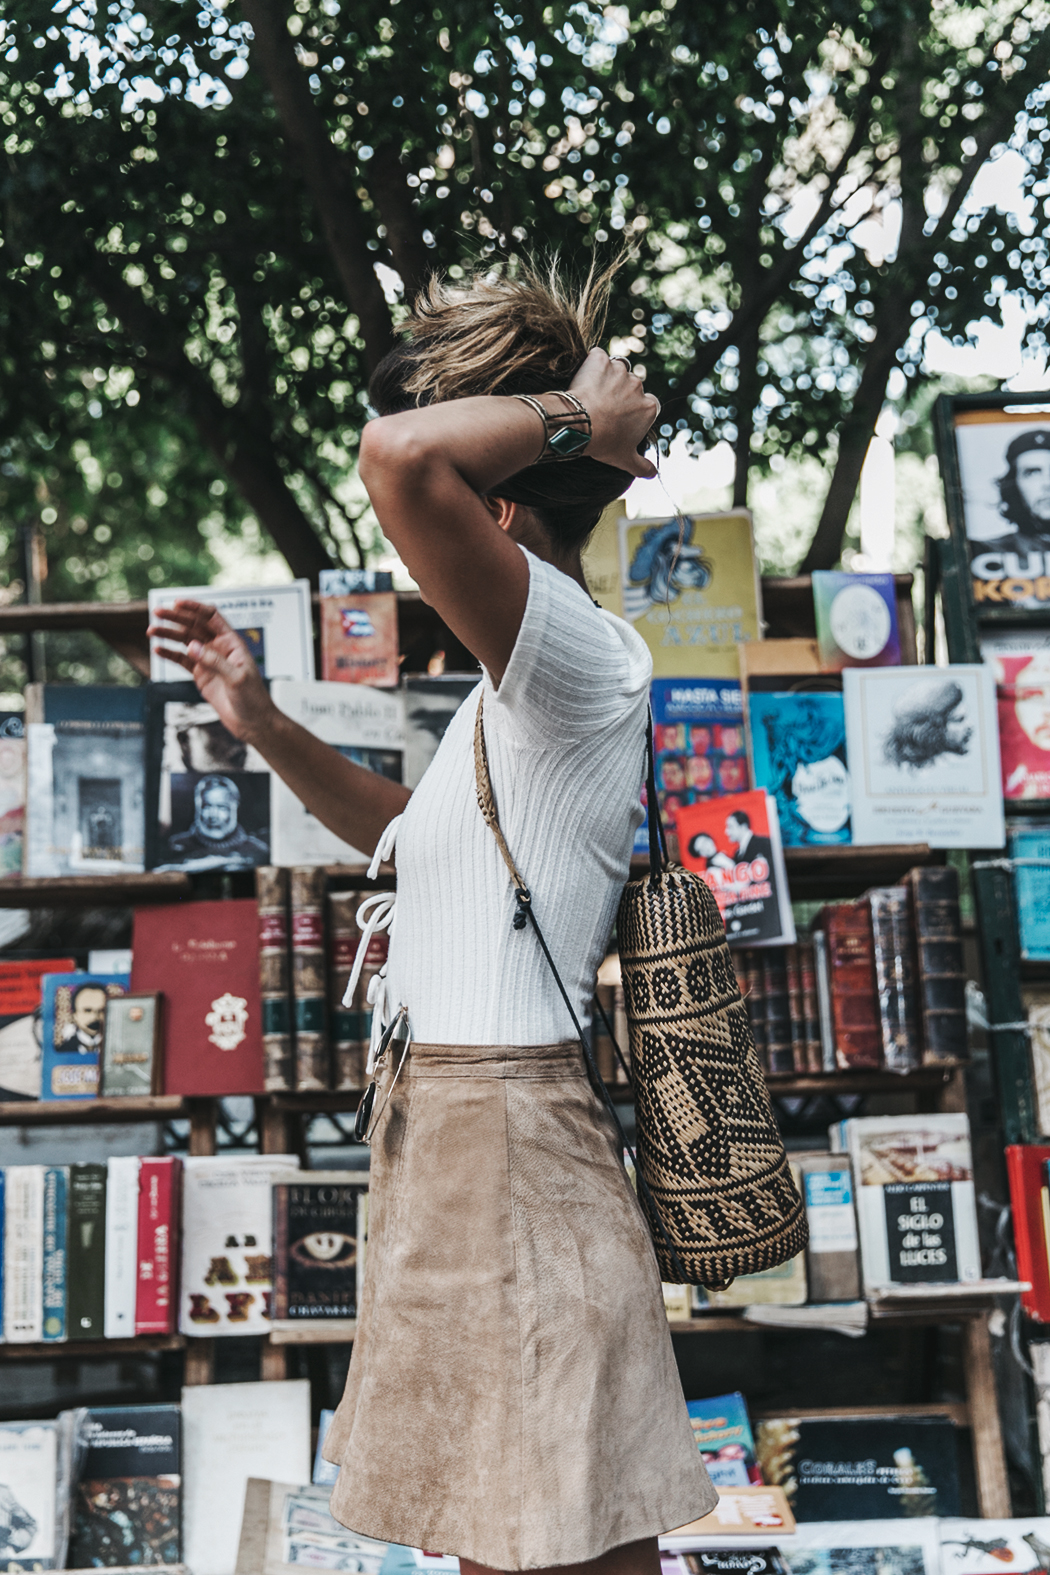 Cuba-Habana_Vieja-Suede_Skirt-Lace_UP_Body-Privacy_Please-Wedges-Outfit-Collage_Vintage-Travels-Street_Style-Backpack-41